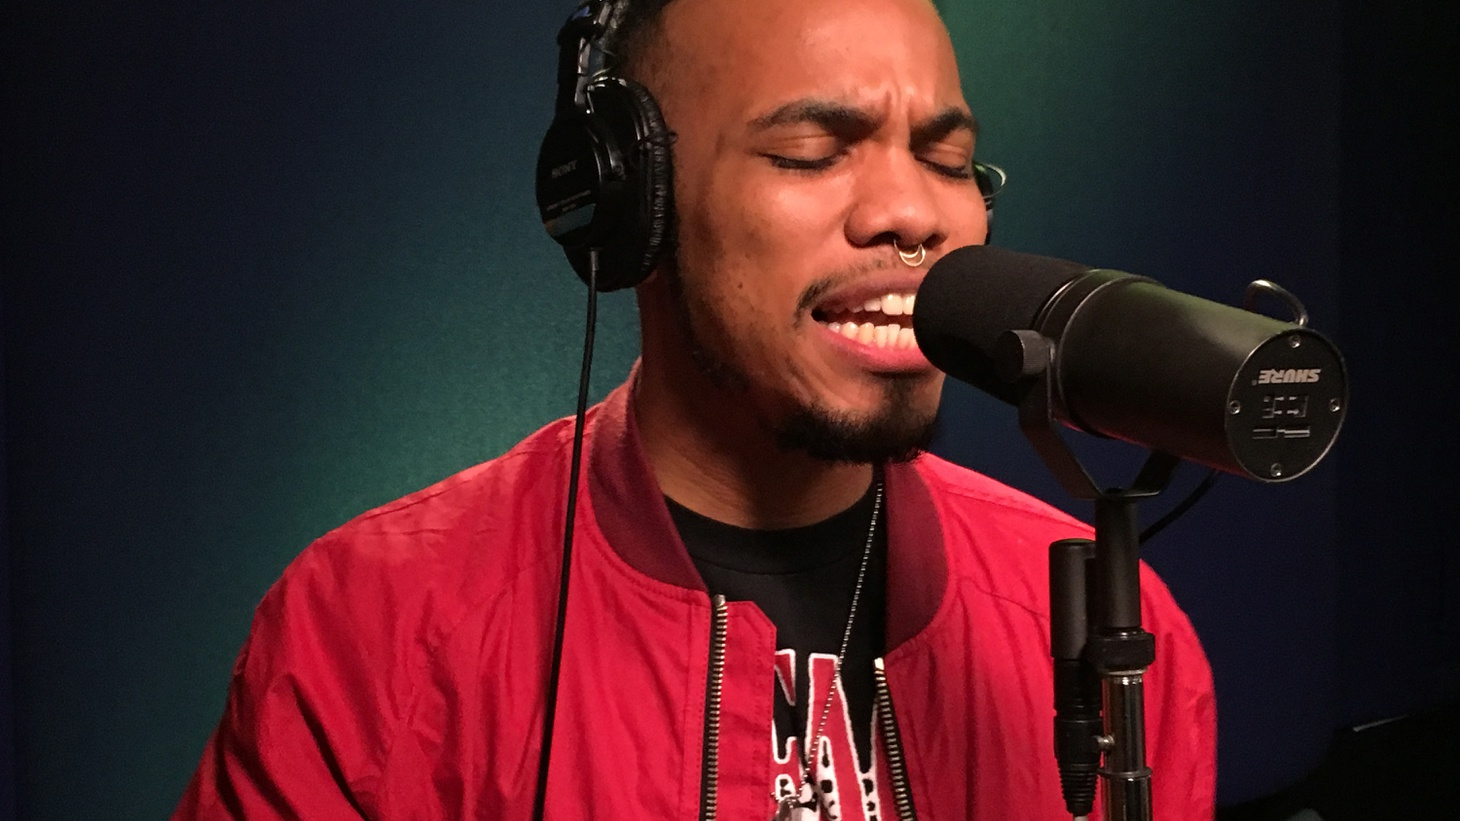 Anderson .Paak is one of the most buzzed about artists emerging from Los Angeles right now.